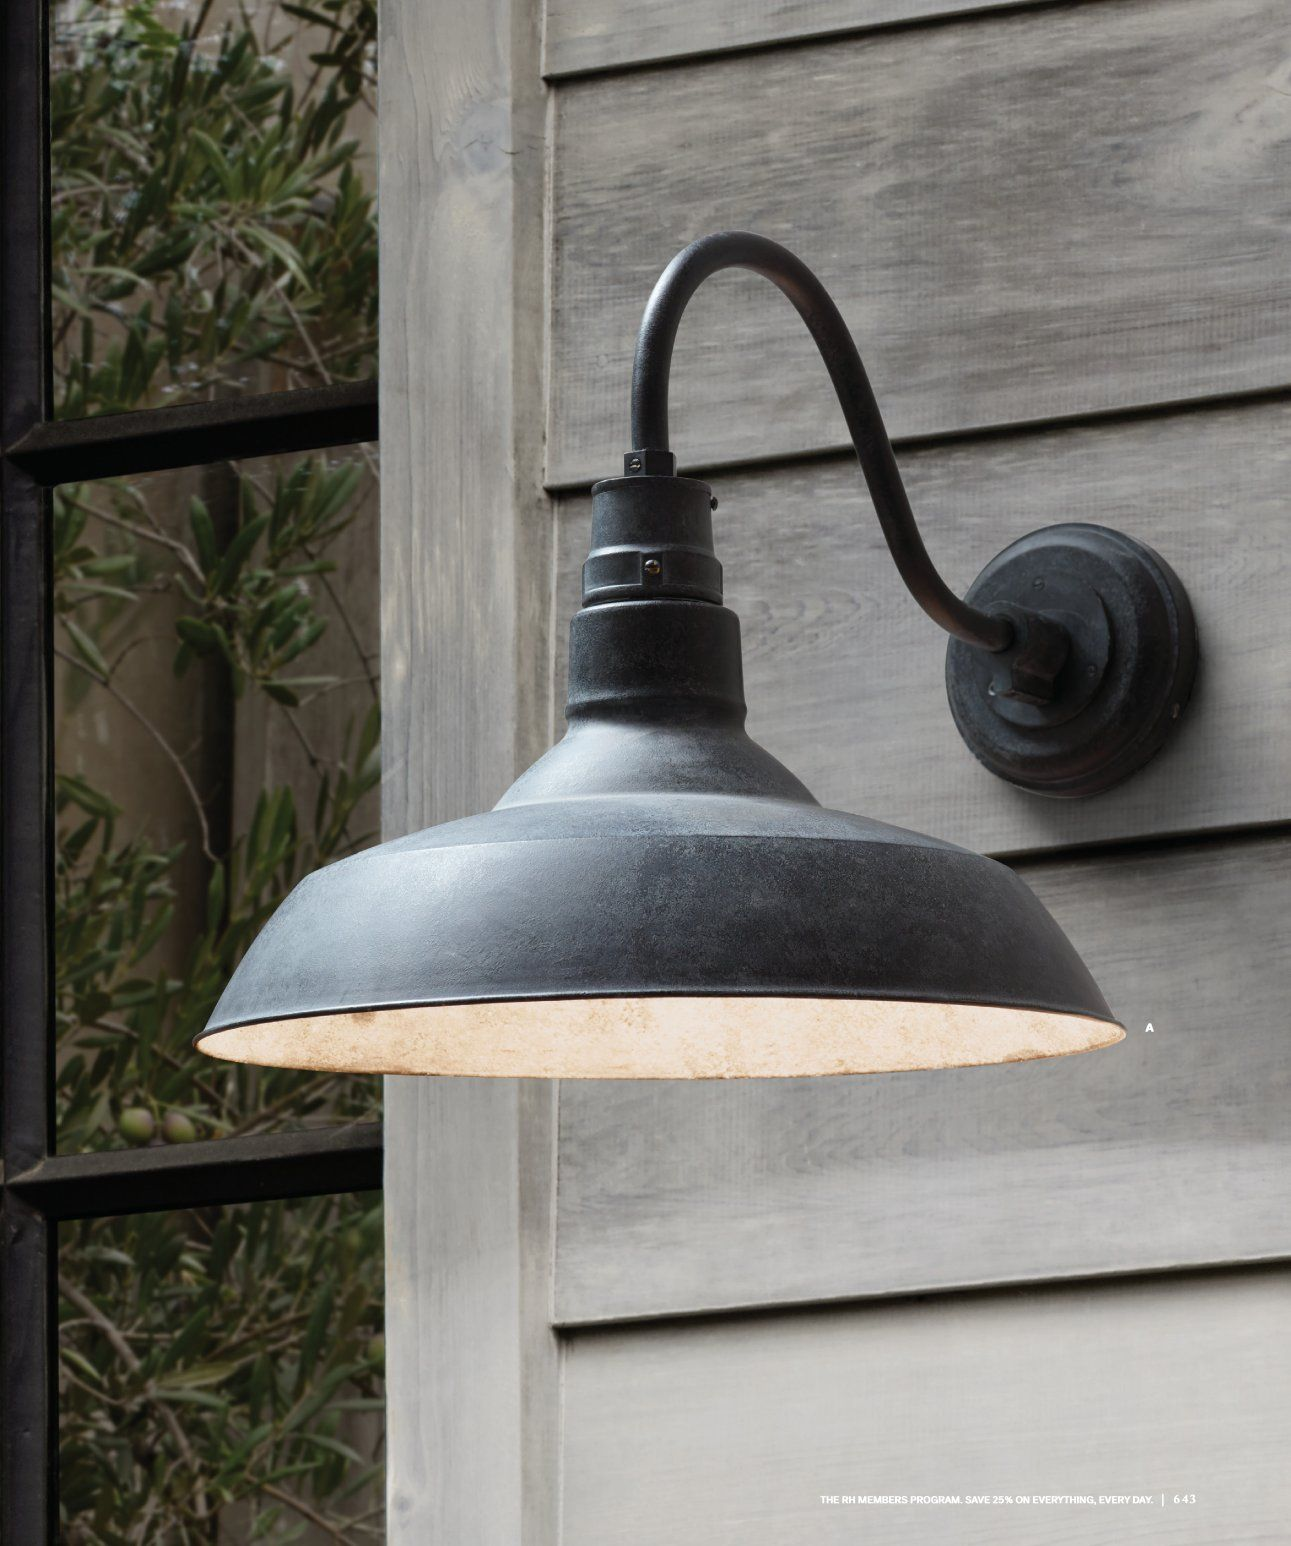 Restoration Hardware Vintage French Farmhouse Sconce Pin By Karen Rambo On Lighting Outdoor Sconces Sconces